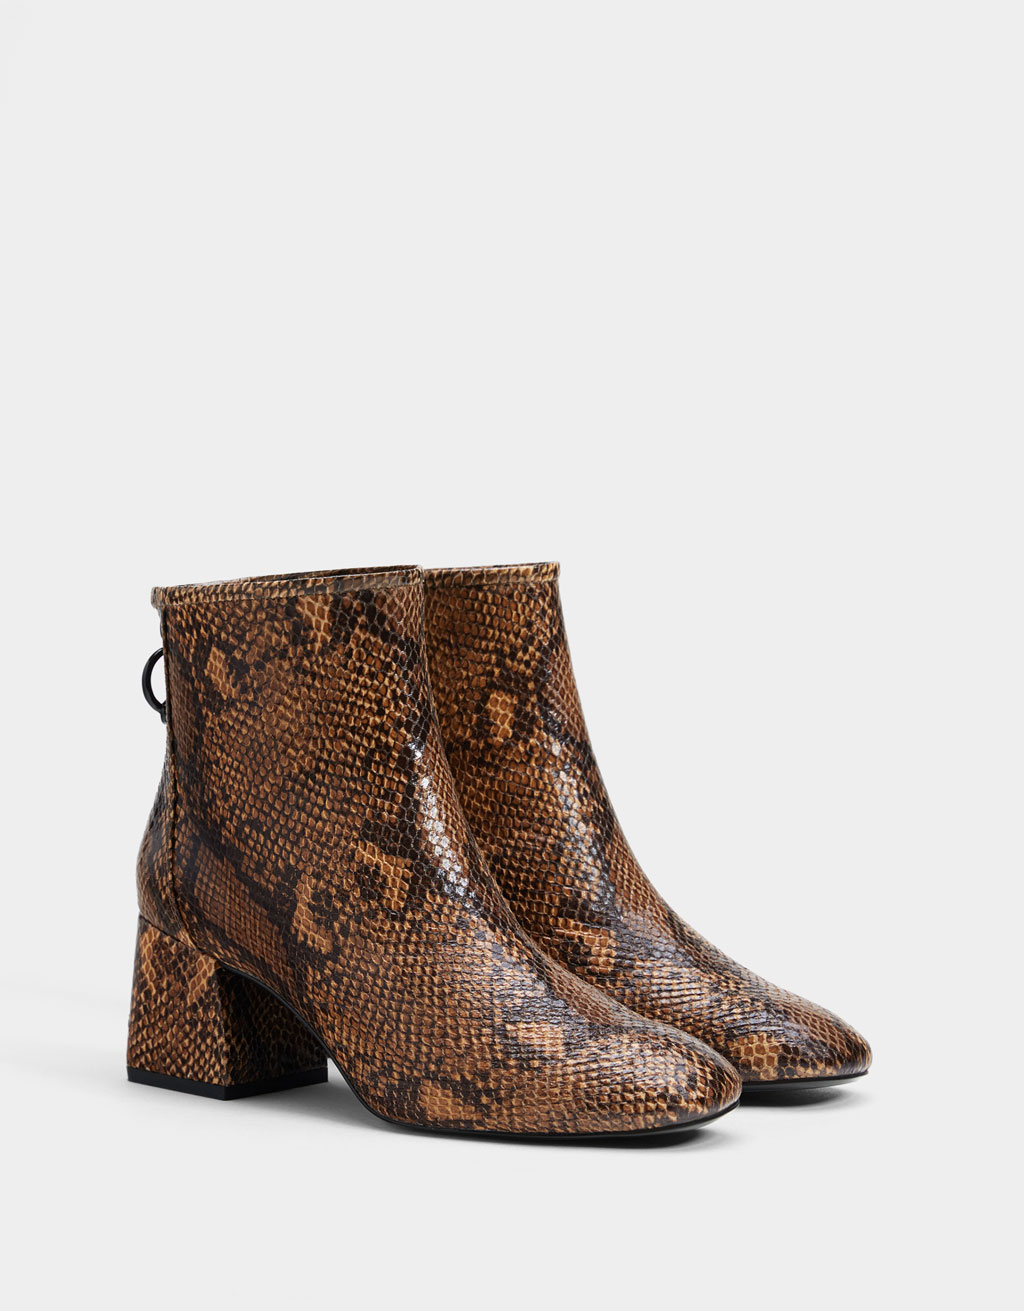 Bottines talon mi-haut animal print